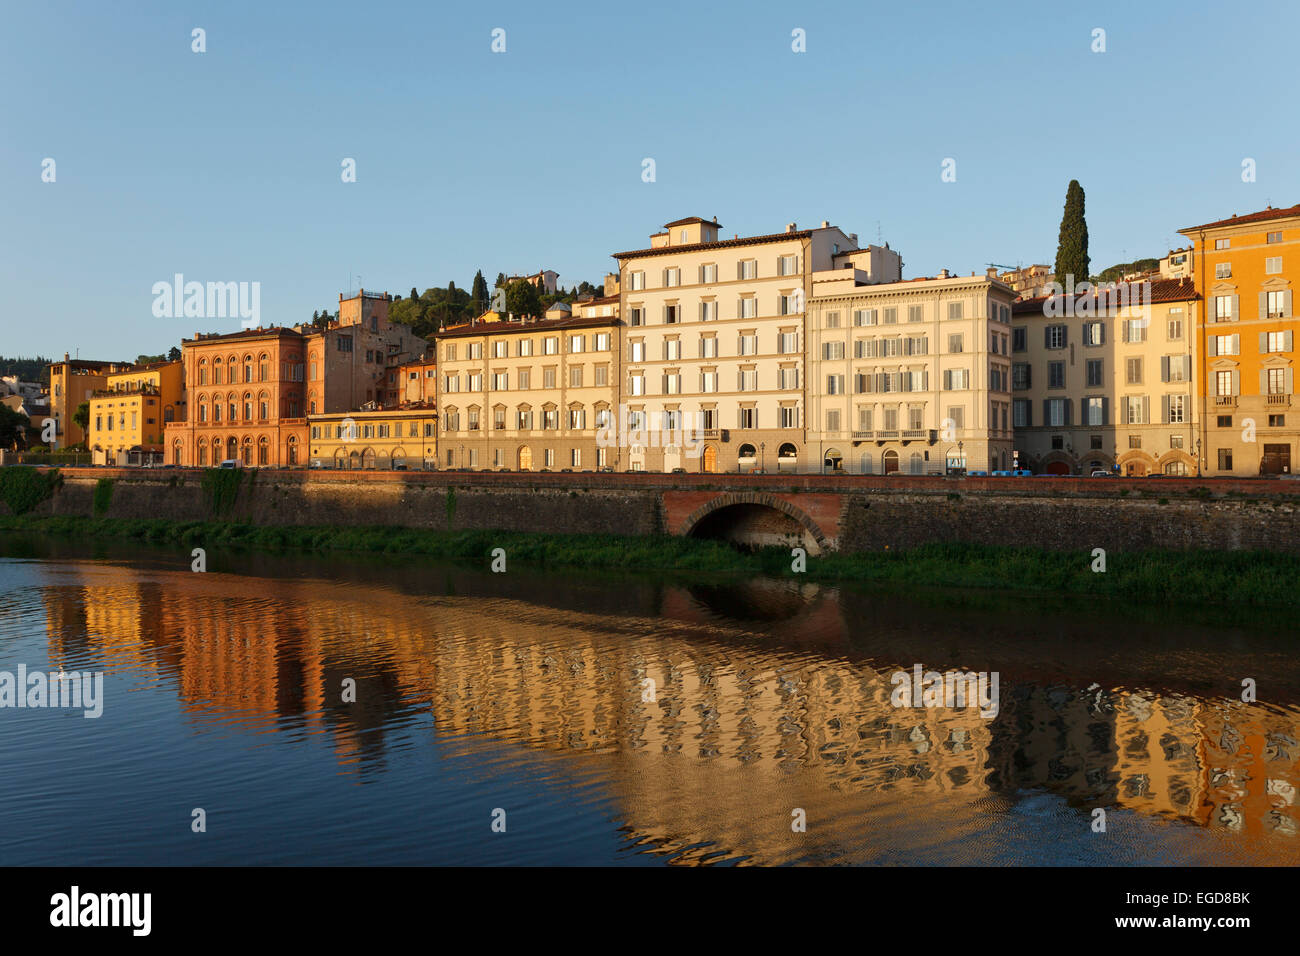 Arno river, historic centre of Florence, UNESCO World Heritage Site, Firenze, Florence, Tuscany, Italy, Europe - Stock Image